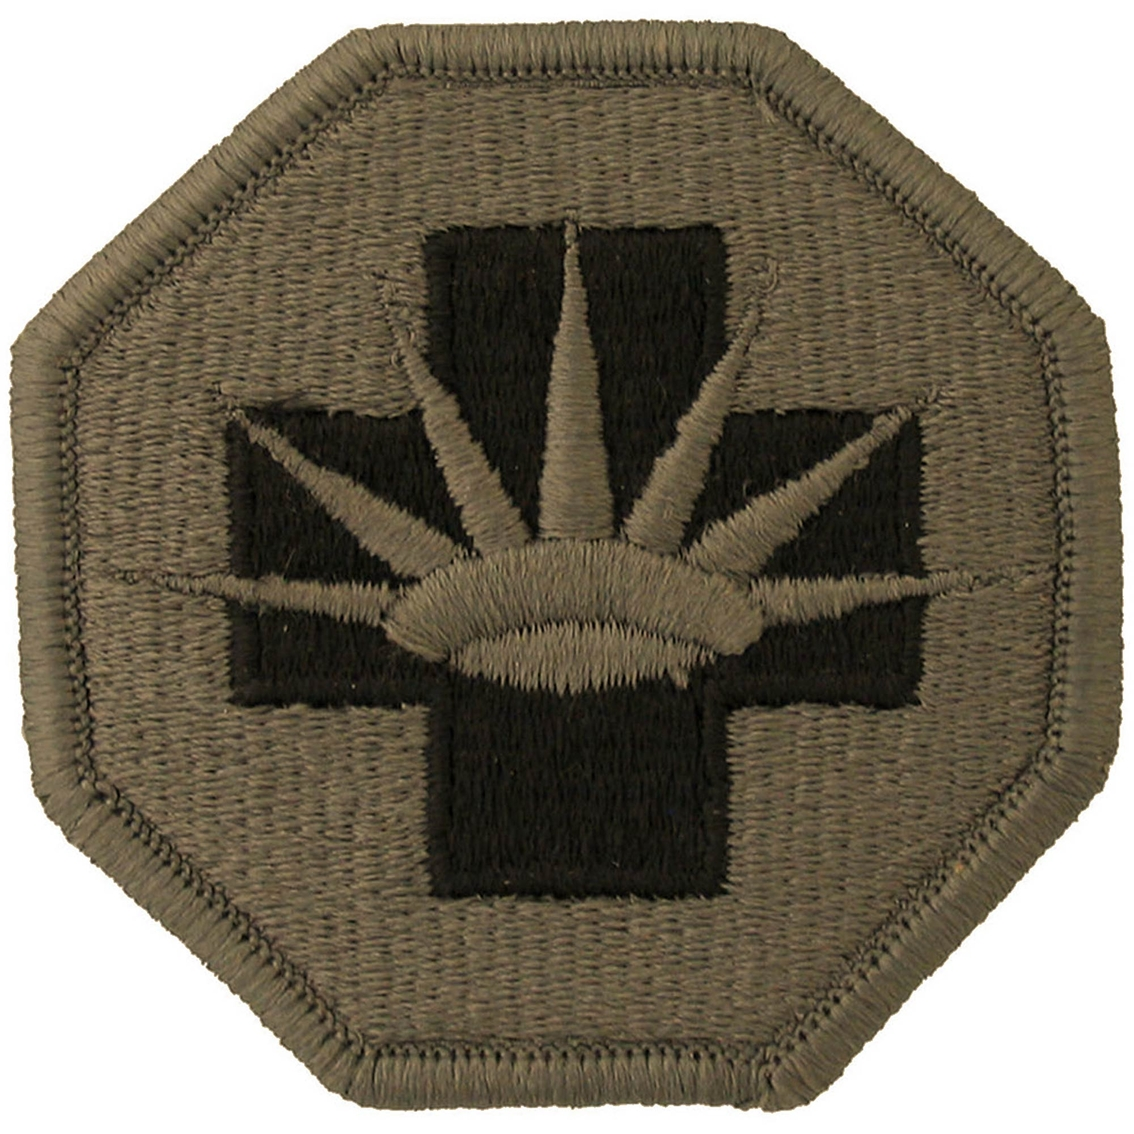 Army Unit Patch 8th Medical Brigade (ocp)   Ocp Unit Patches ...